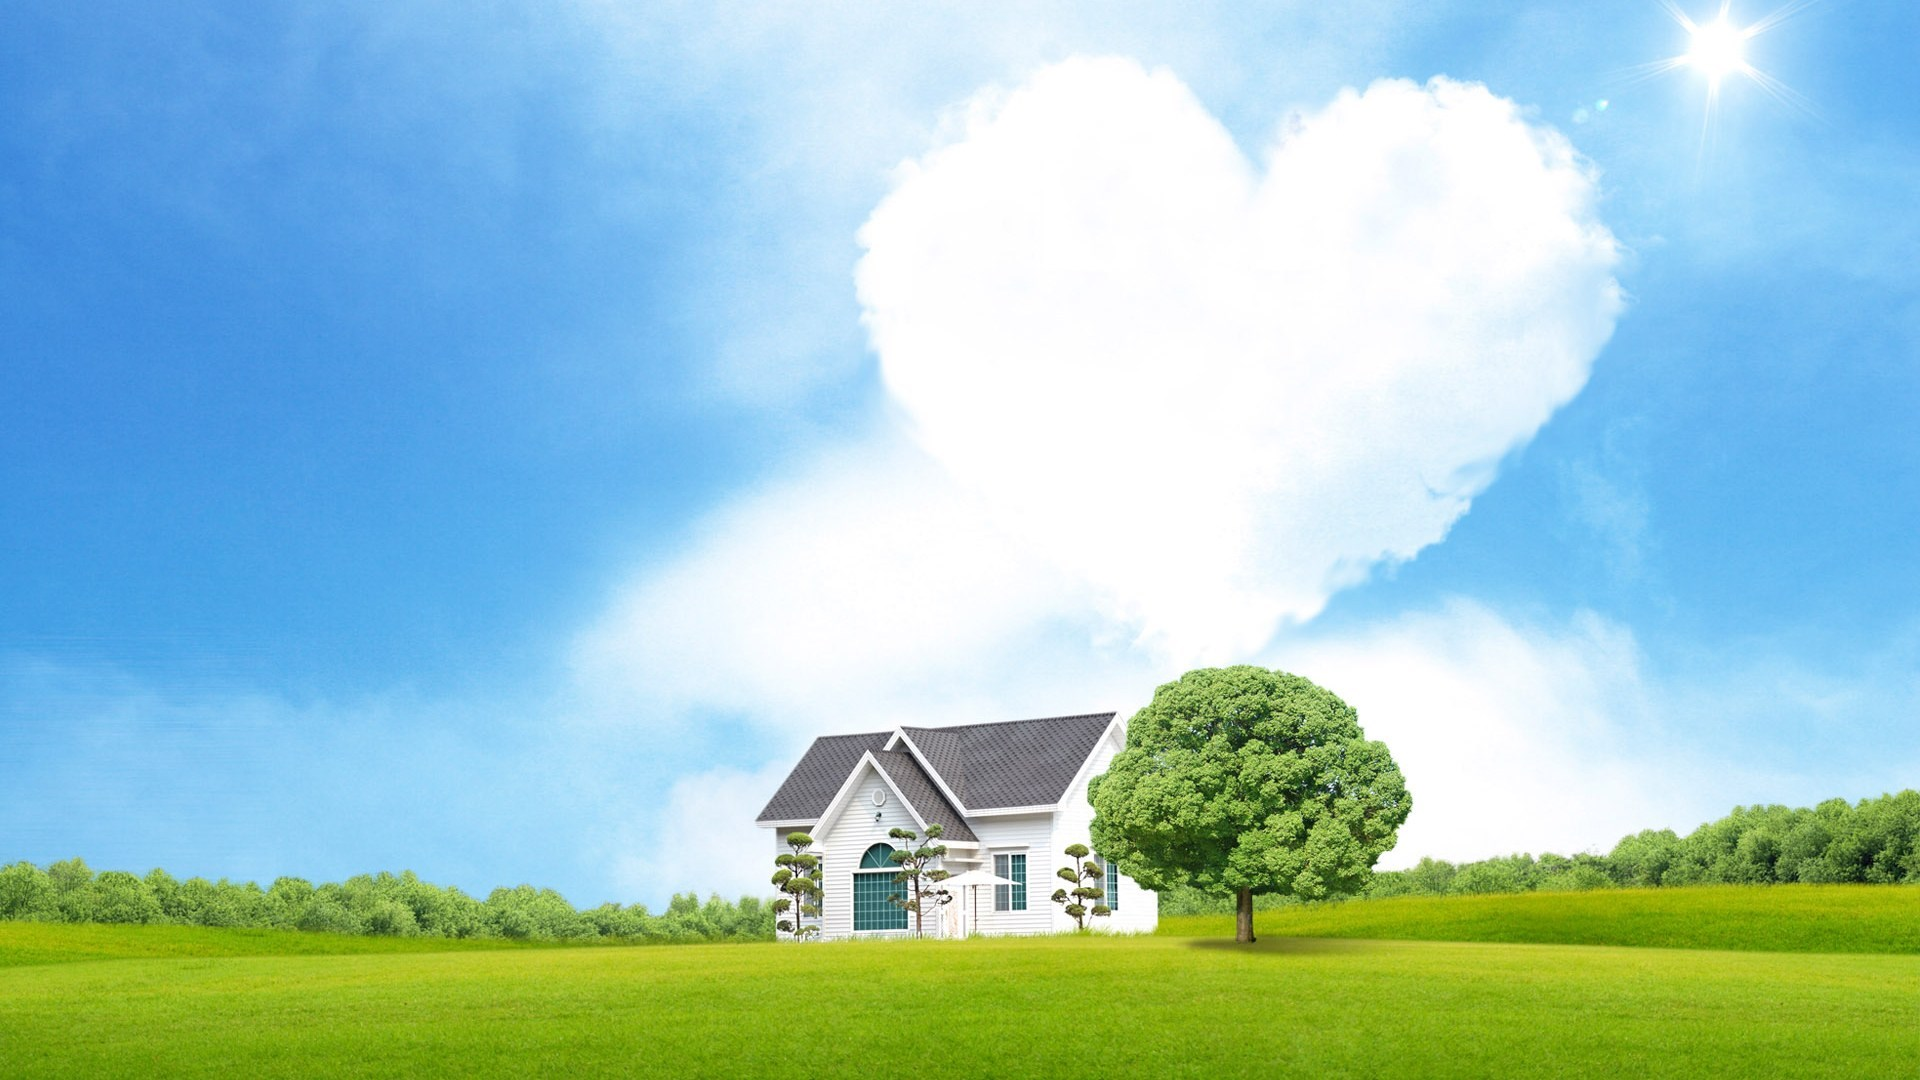 creative-design-dream-love-house-images-wallpaper-wp3604404